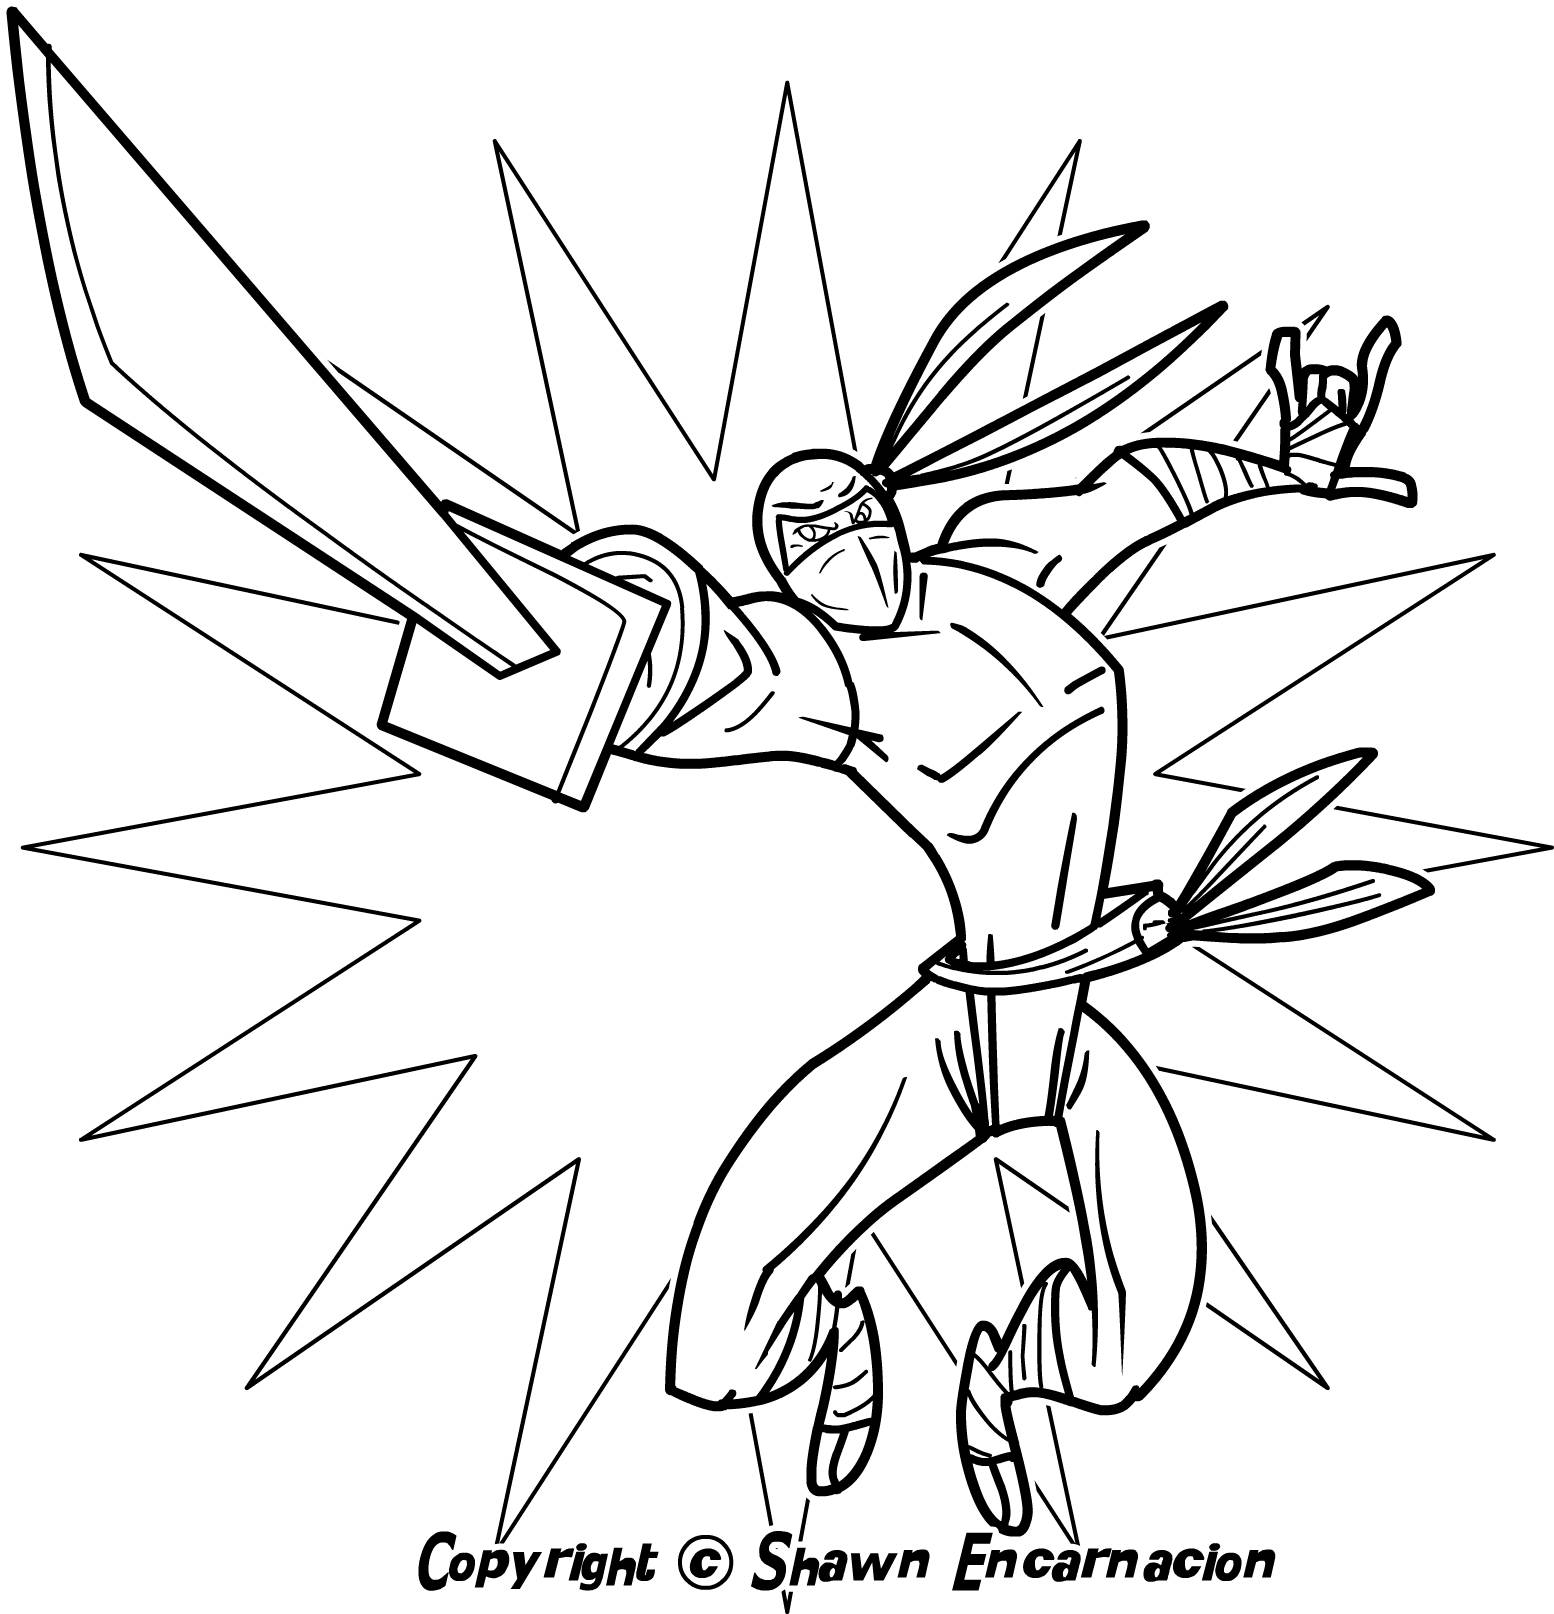 Ninja Coloring Pages Free Printable